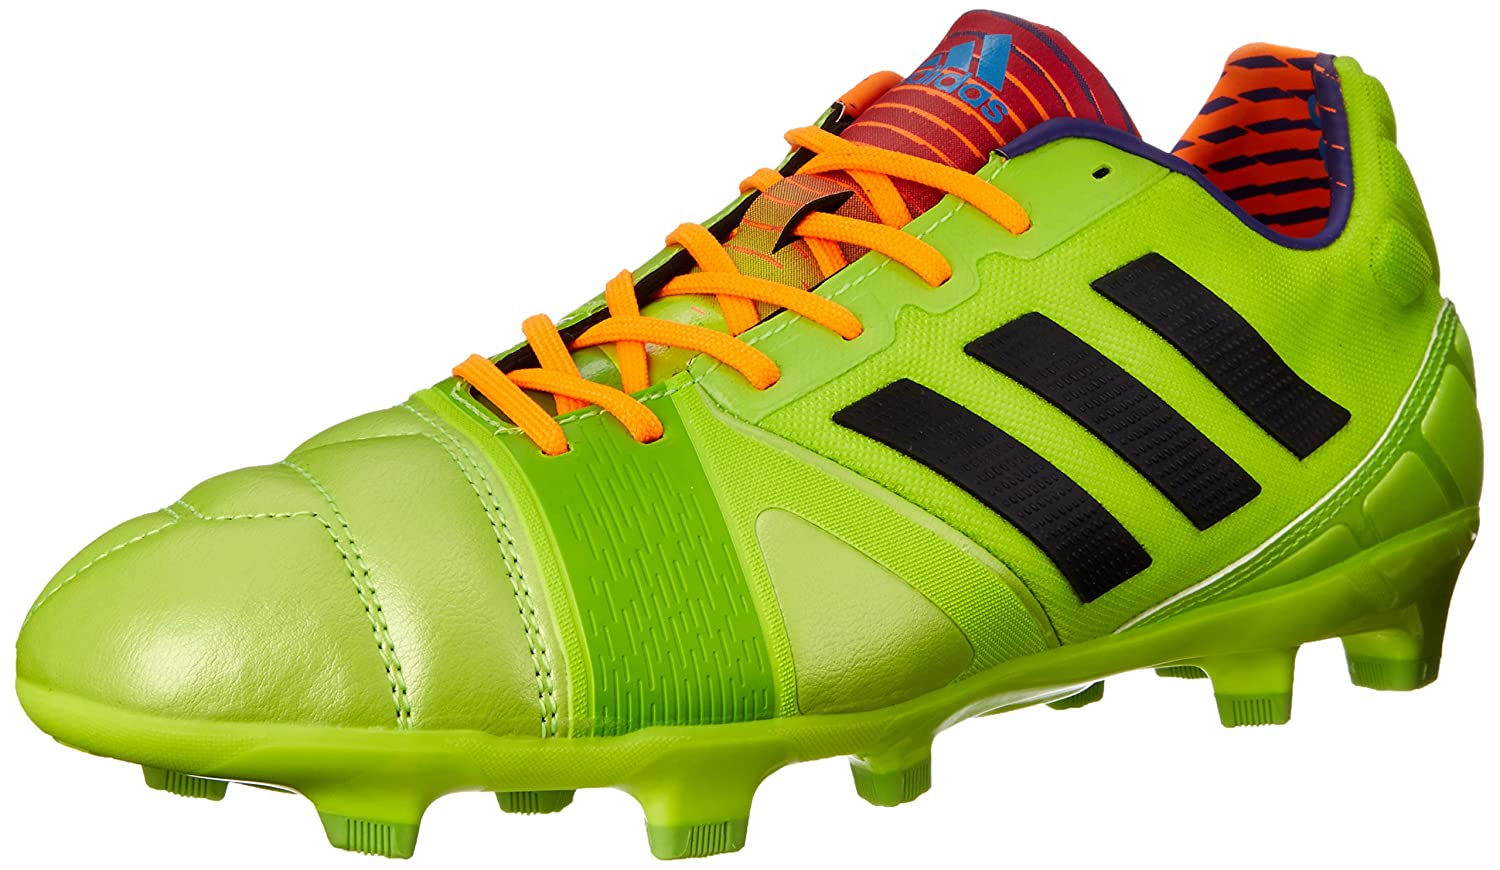 adidas Performance Men's Nitrocharge 2.0 TRX Firm-Ground Soccer Cleat nitrocharge 2.0 TRX FG-M